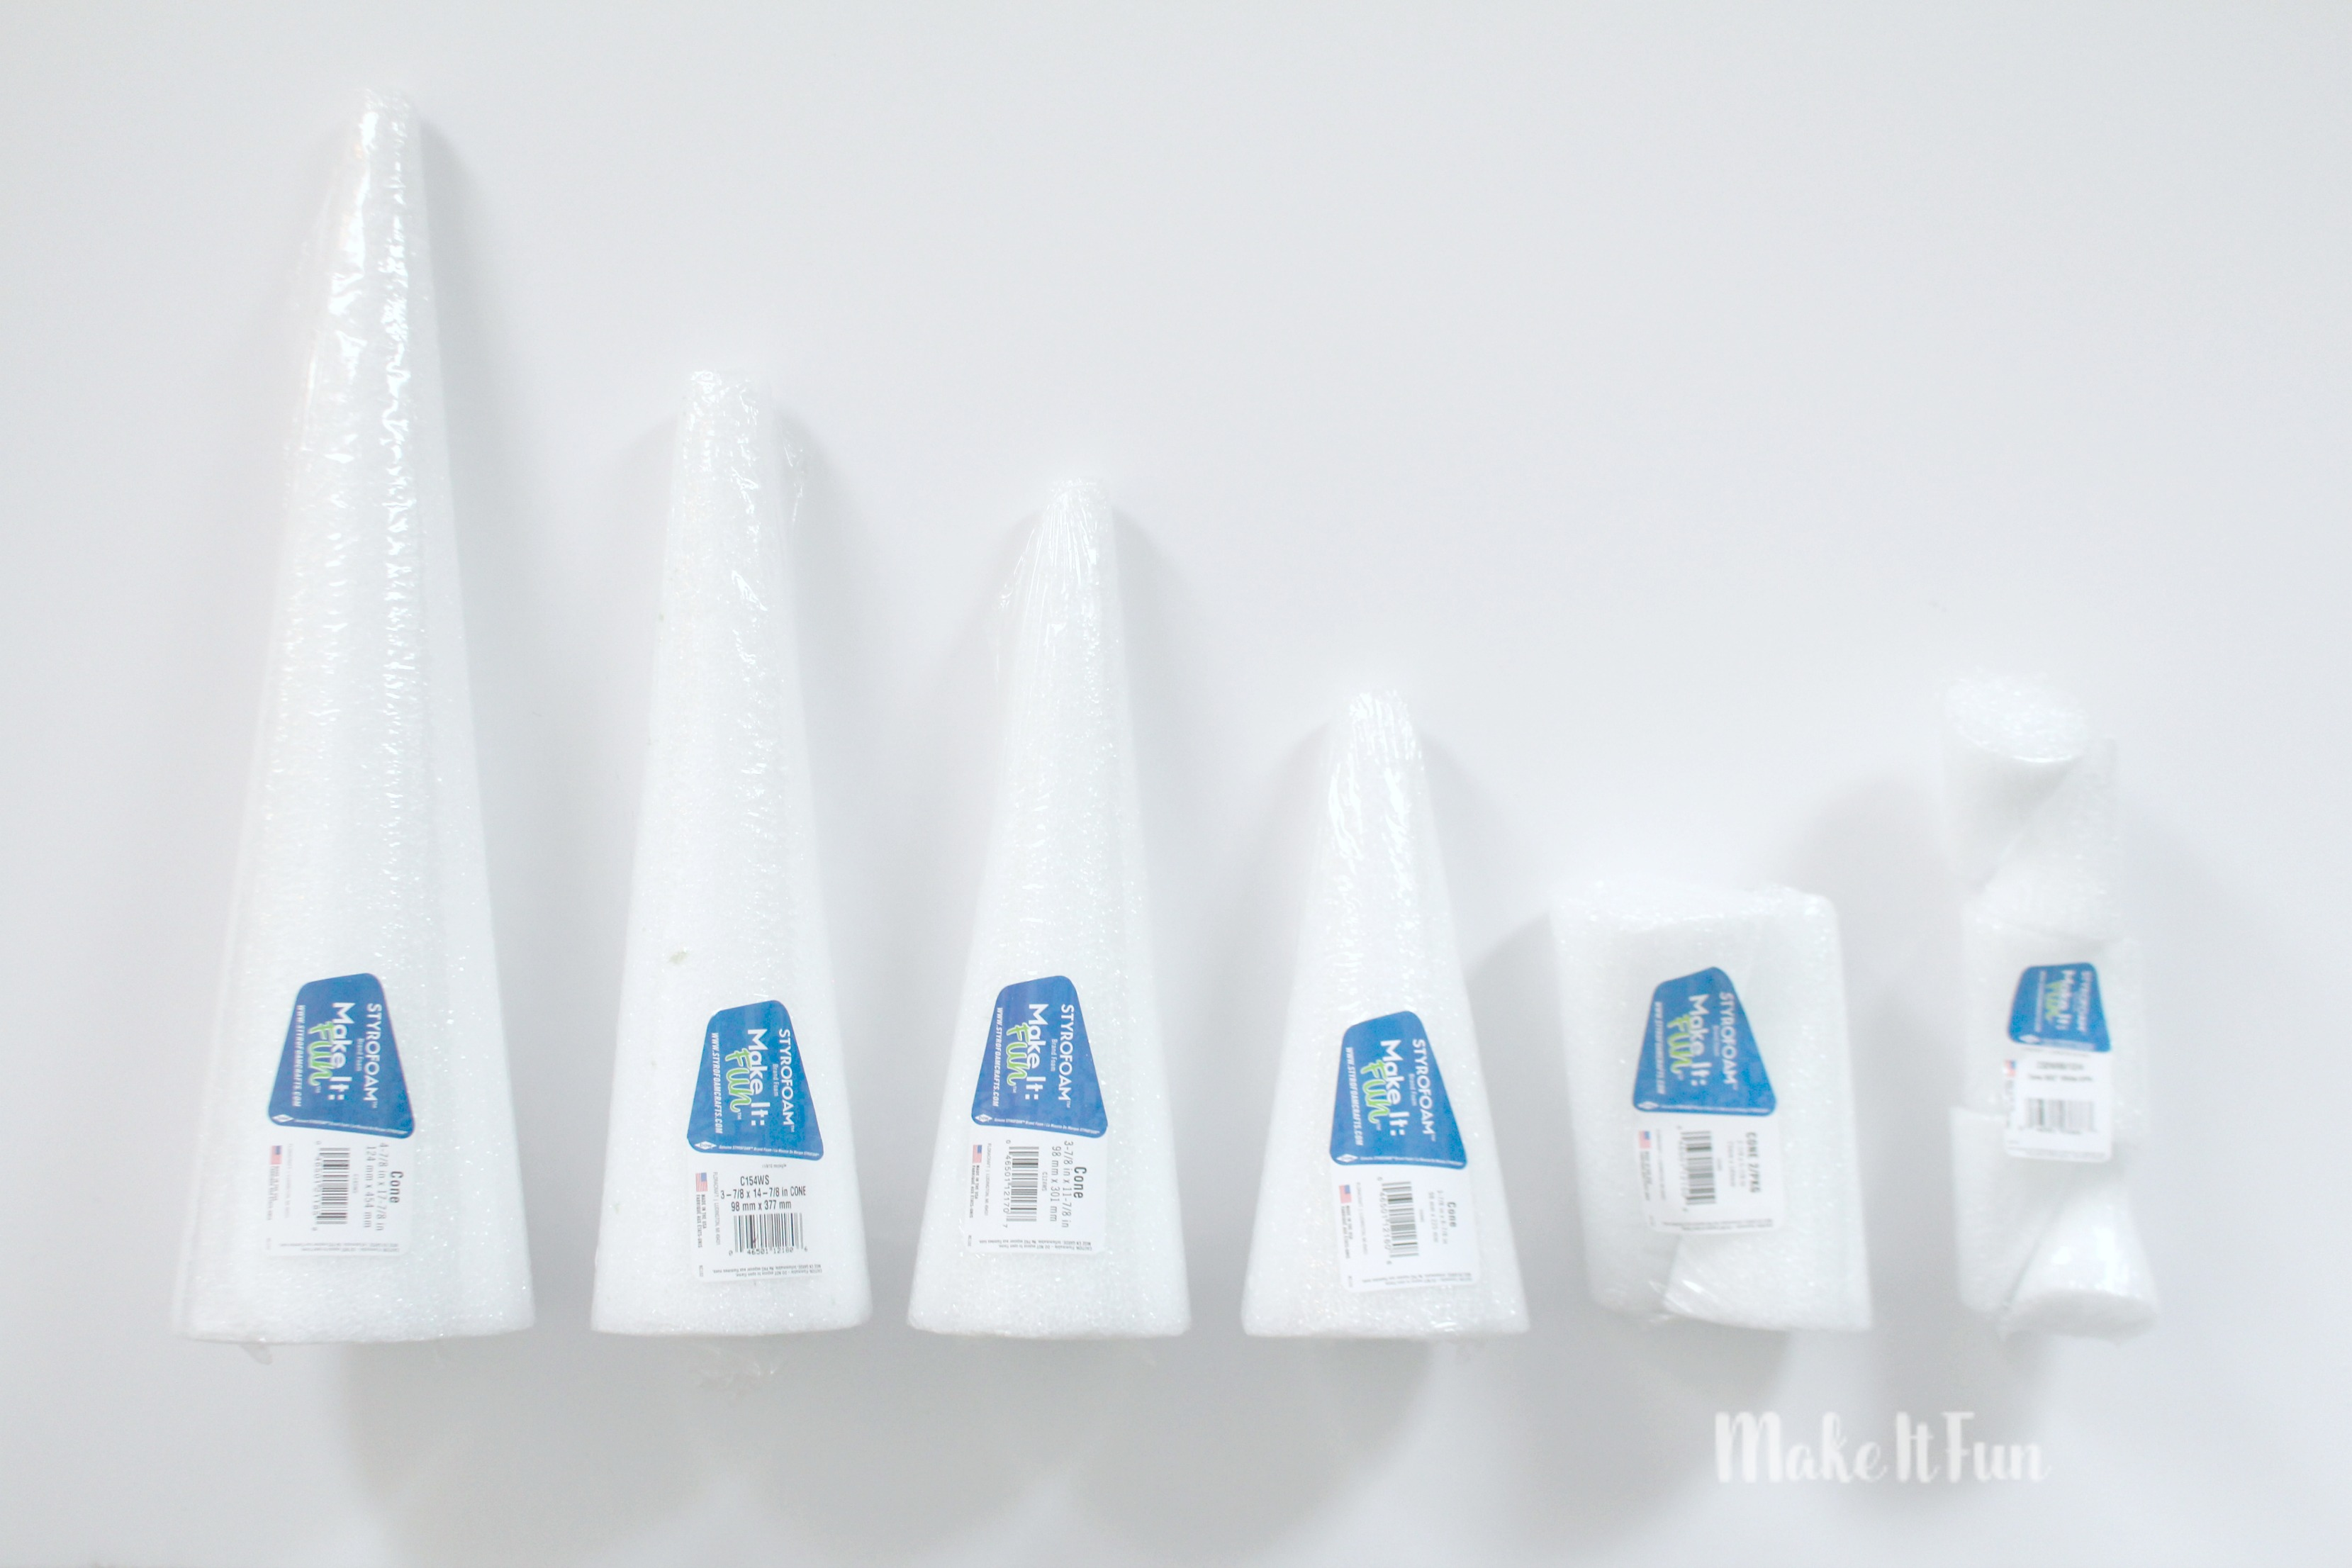 make-it-fun-foam-cones-in-all-sizes